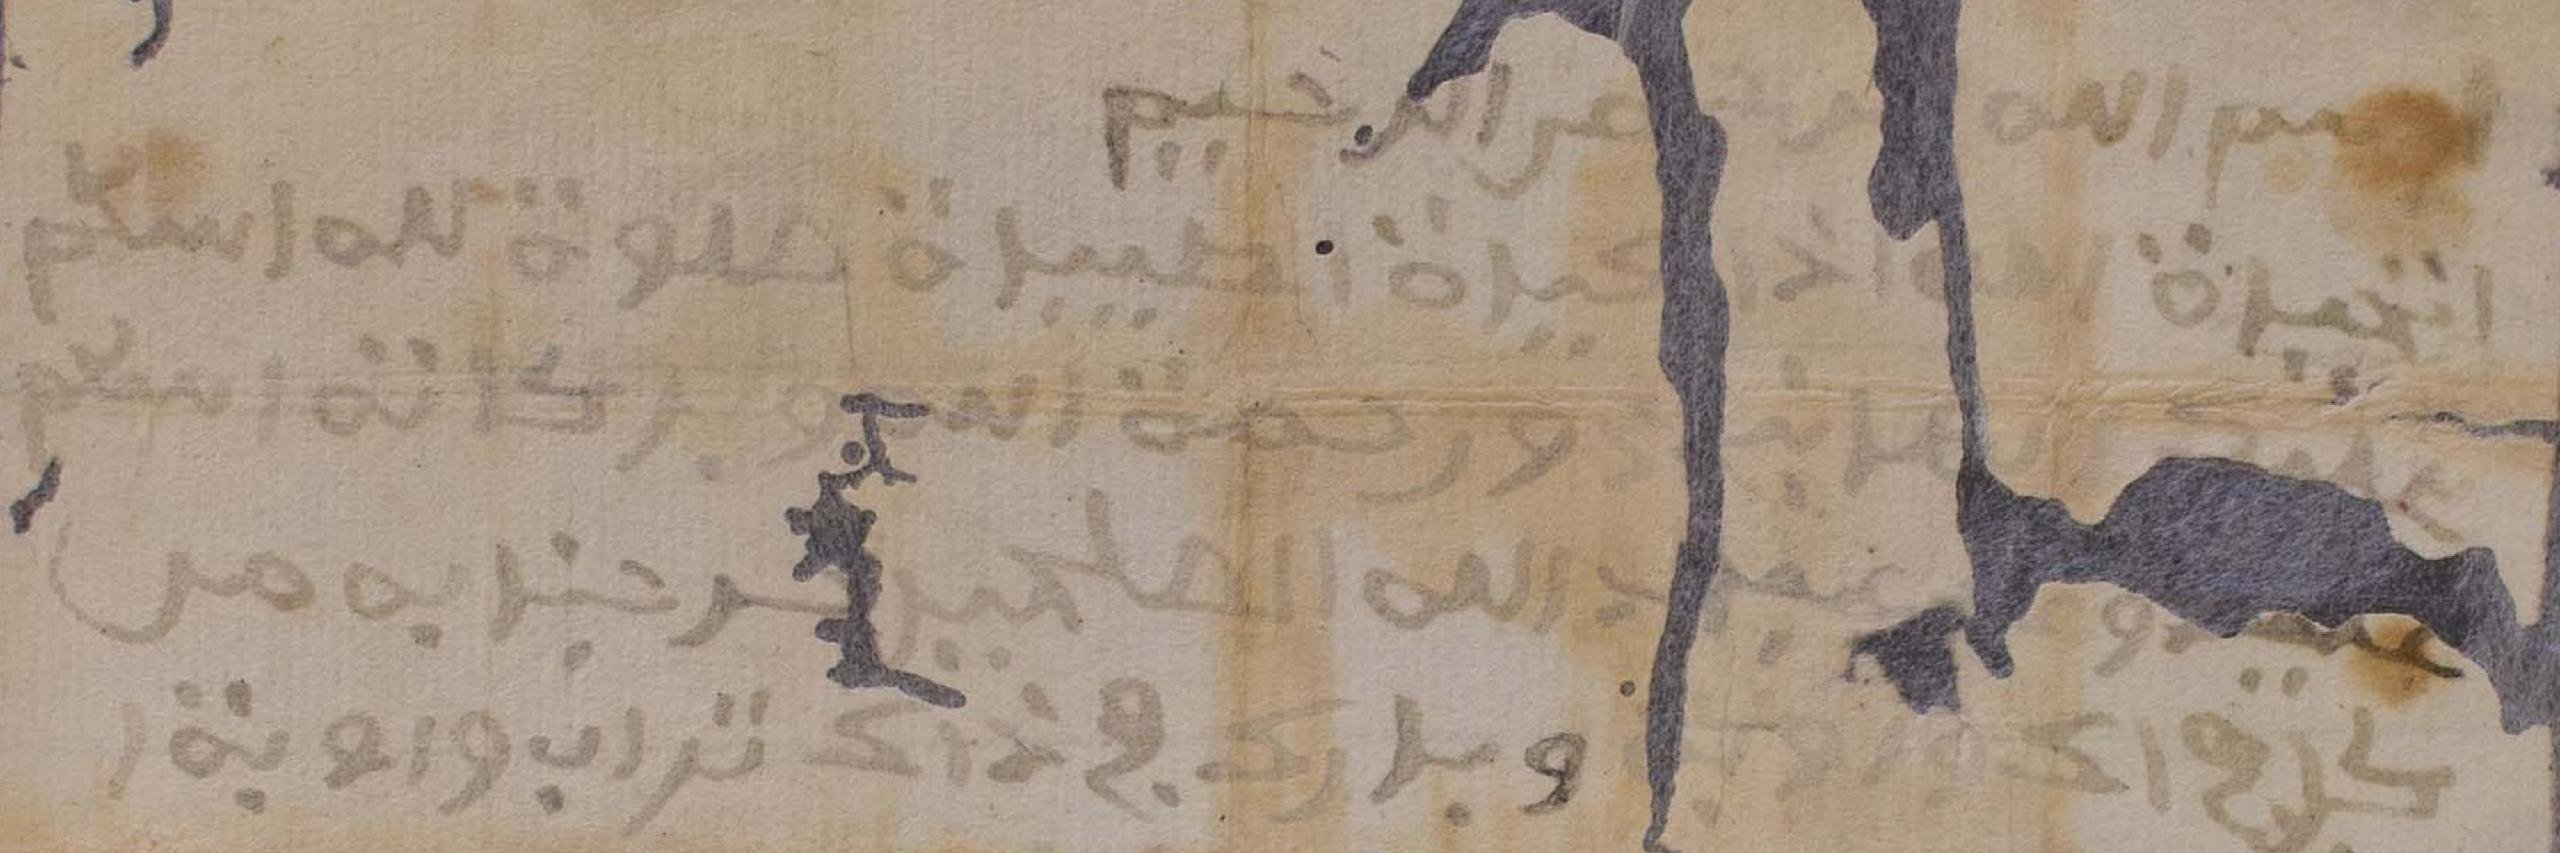 Du'as of the Enslaved: A Journey Through Images